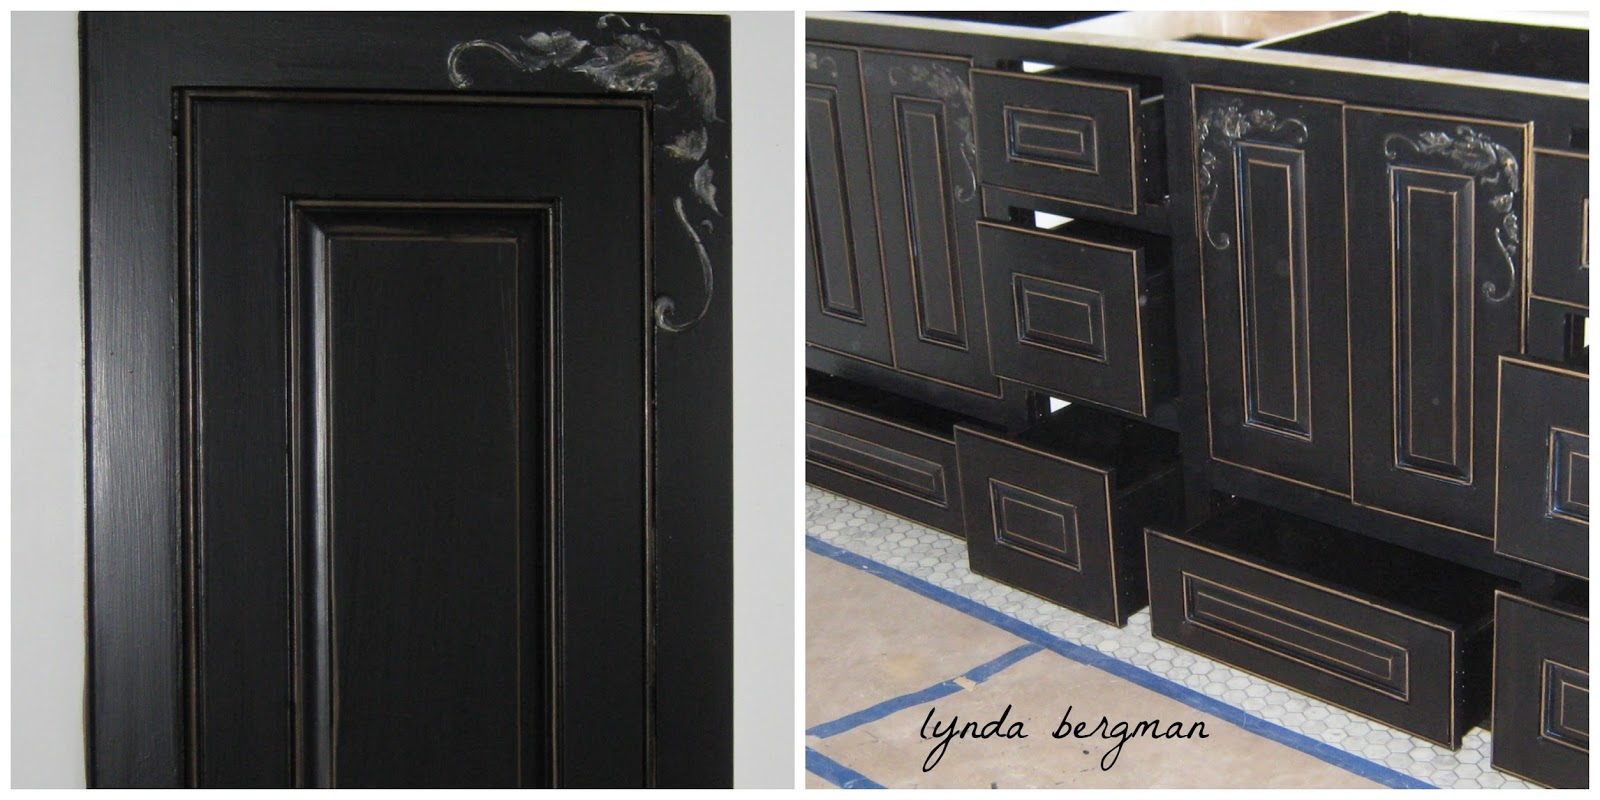 Lynda bergman decorative artisan painting black for Black and silver cabinet